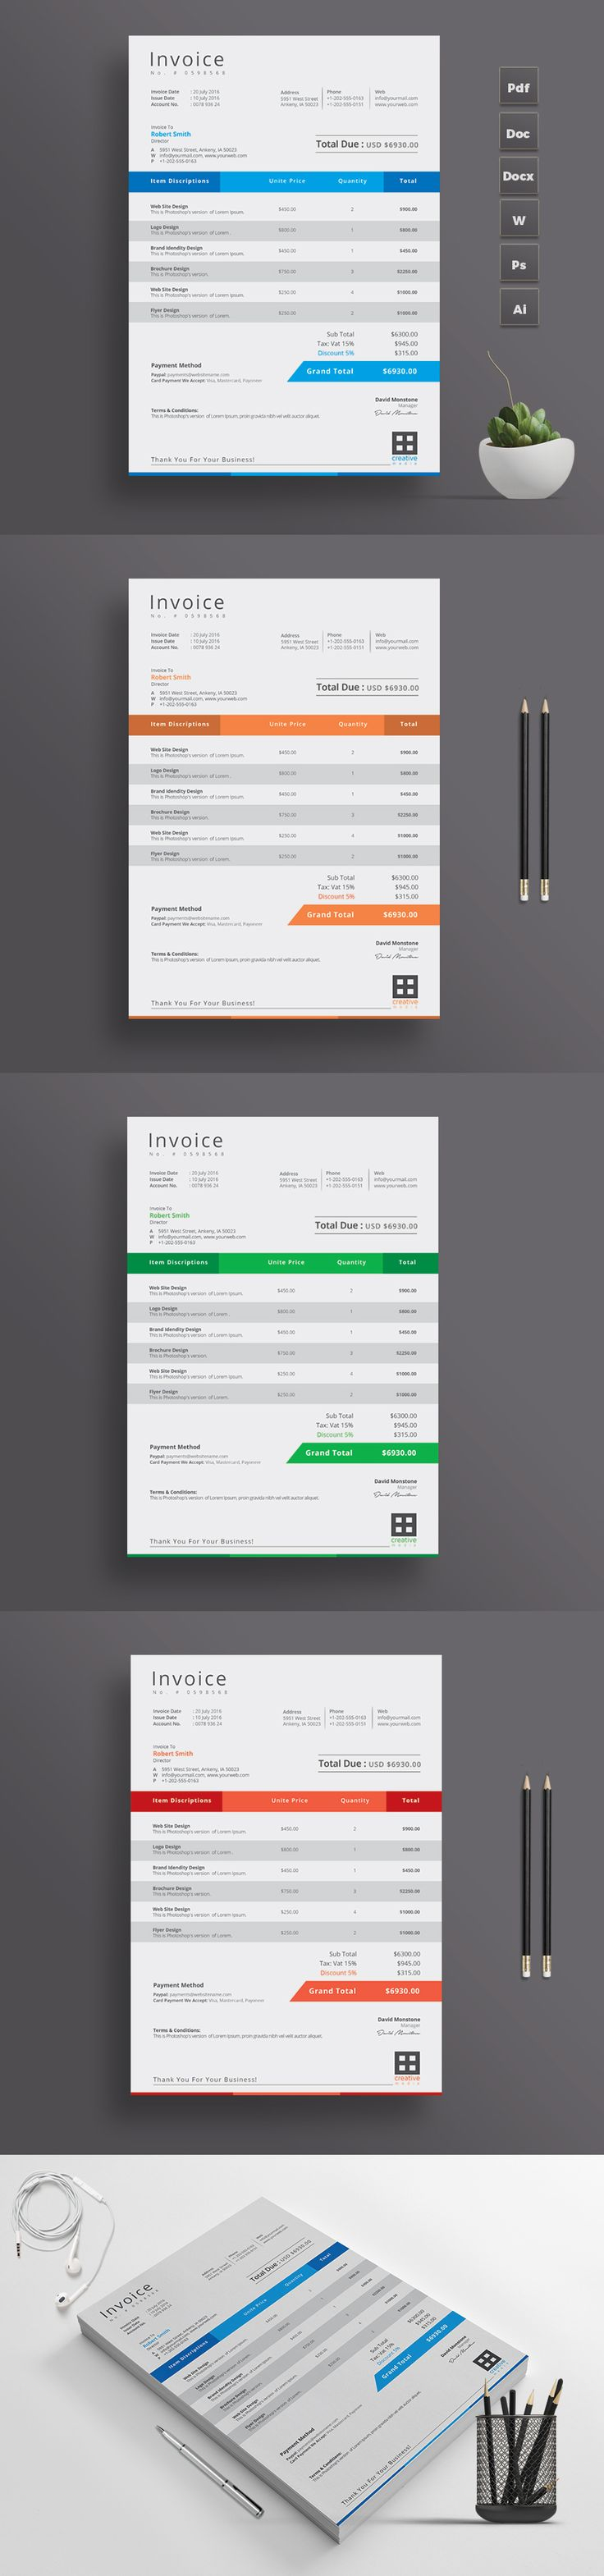 Simple Invoice Design Template with Microsoft Excel Version | A4 Paper Size | Print Ready | Microsoft Word Version Available too | Just download and Print | Color Options Available